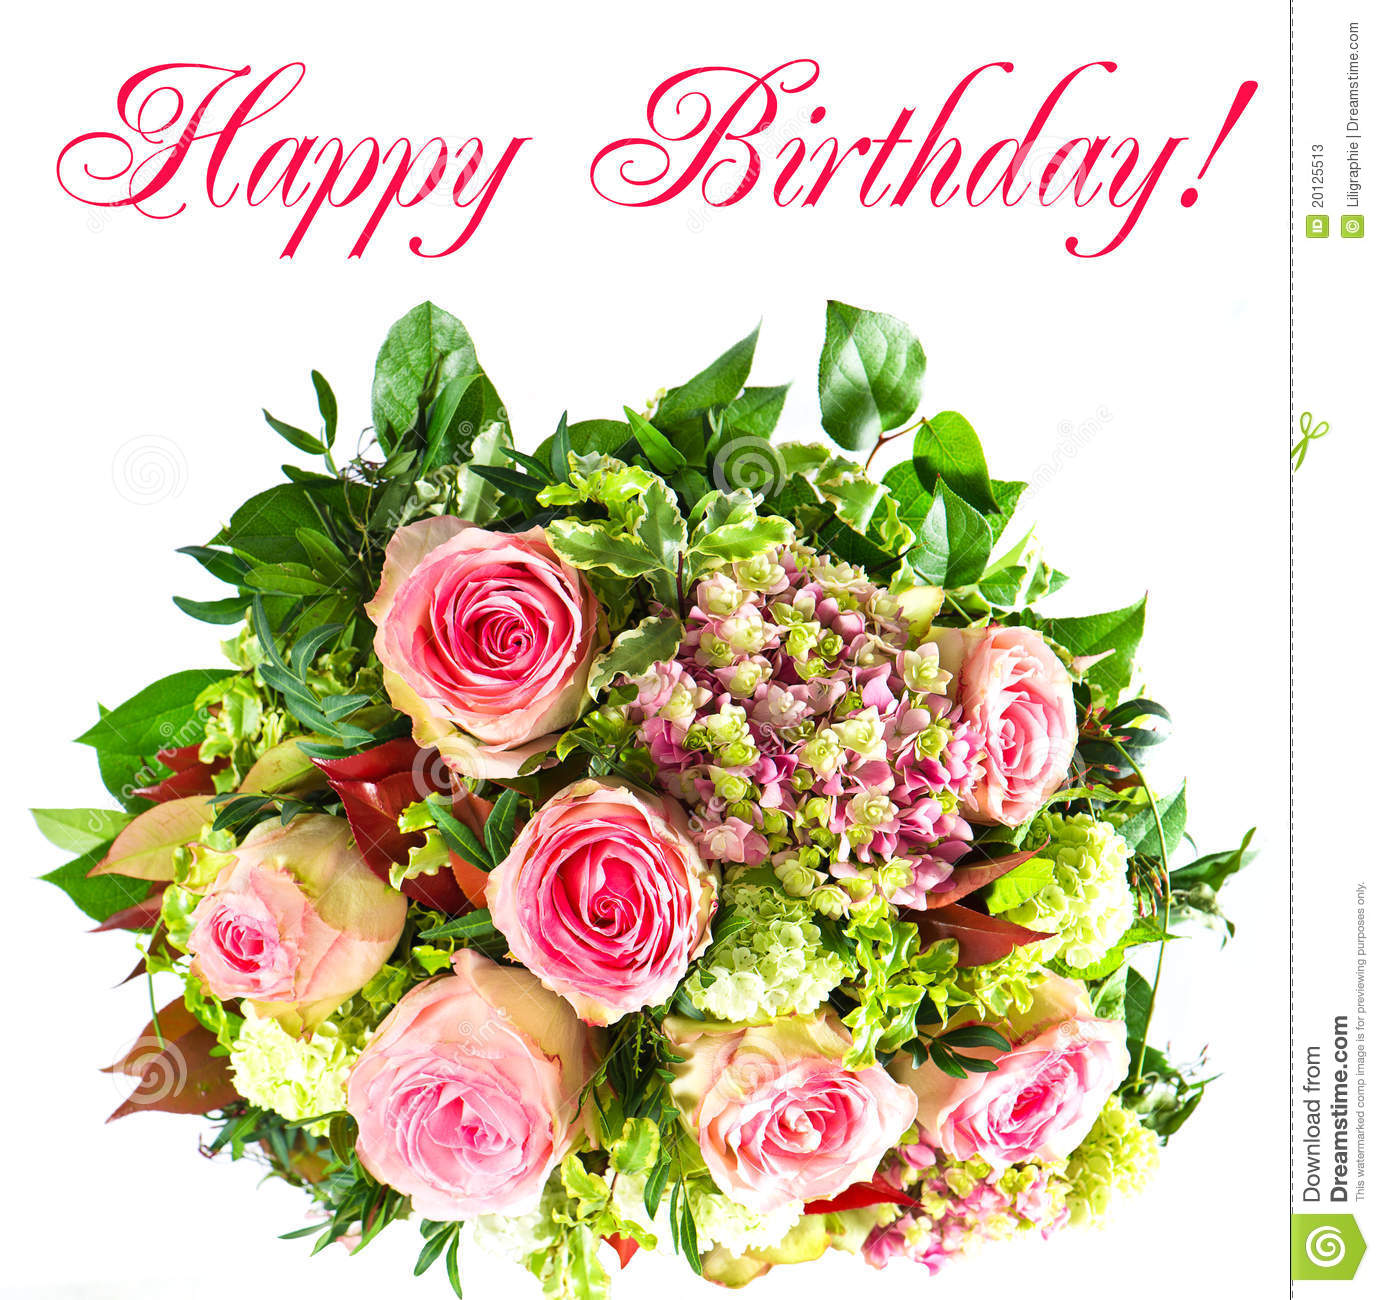 Birthday Bouquet Clipart.